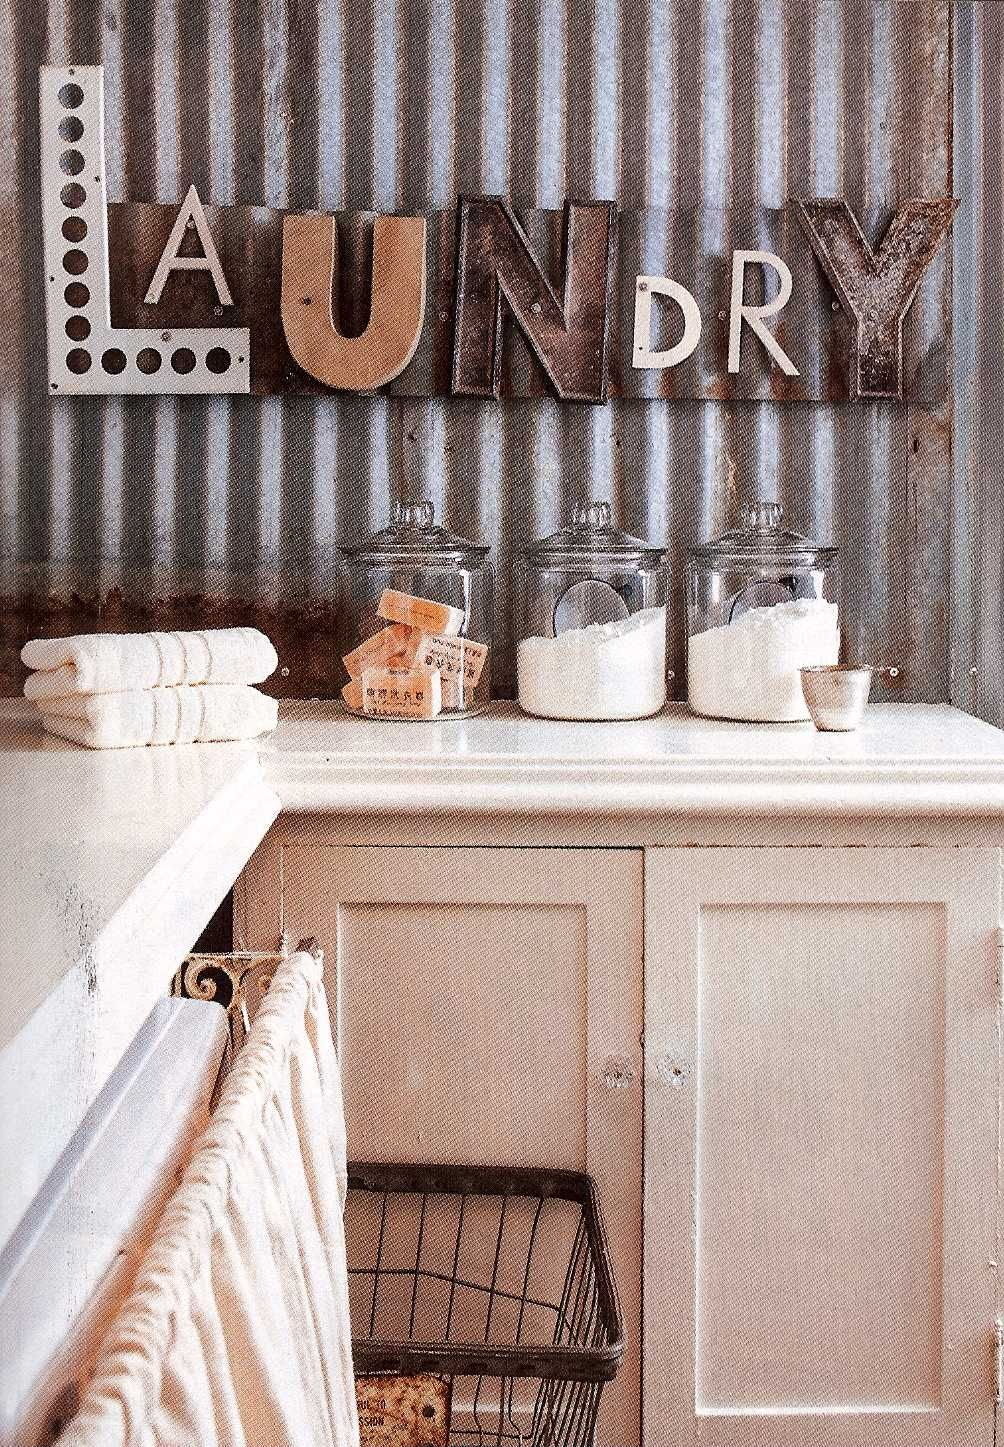 2020 Metal Laundry Room Wall Decor Inside Fabulous Laundry Room With Laundry Repurposed Letters As Wall Decor (View 1 of 20)